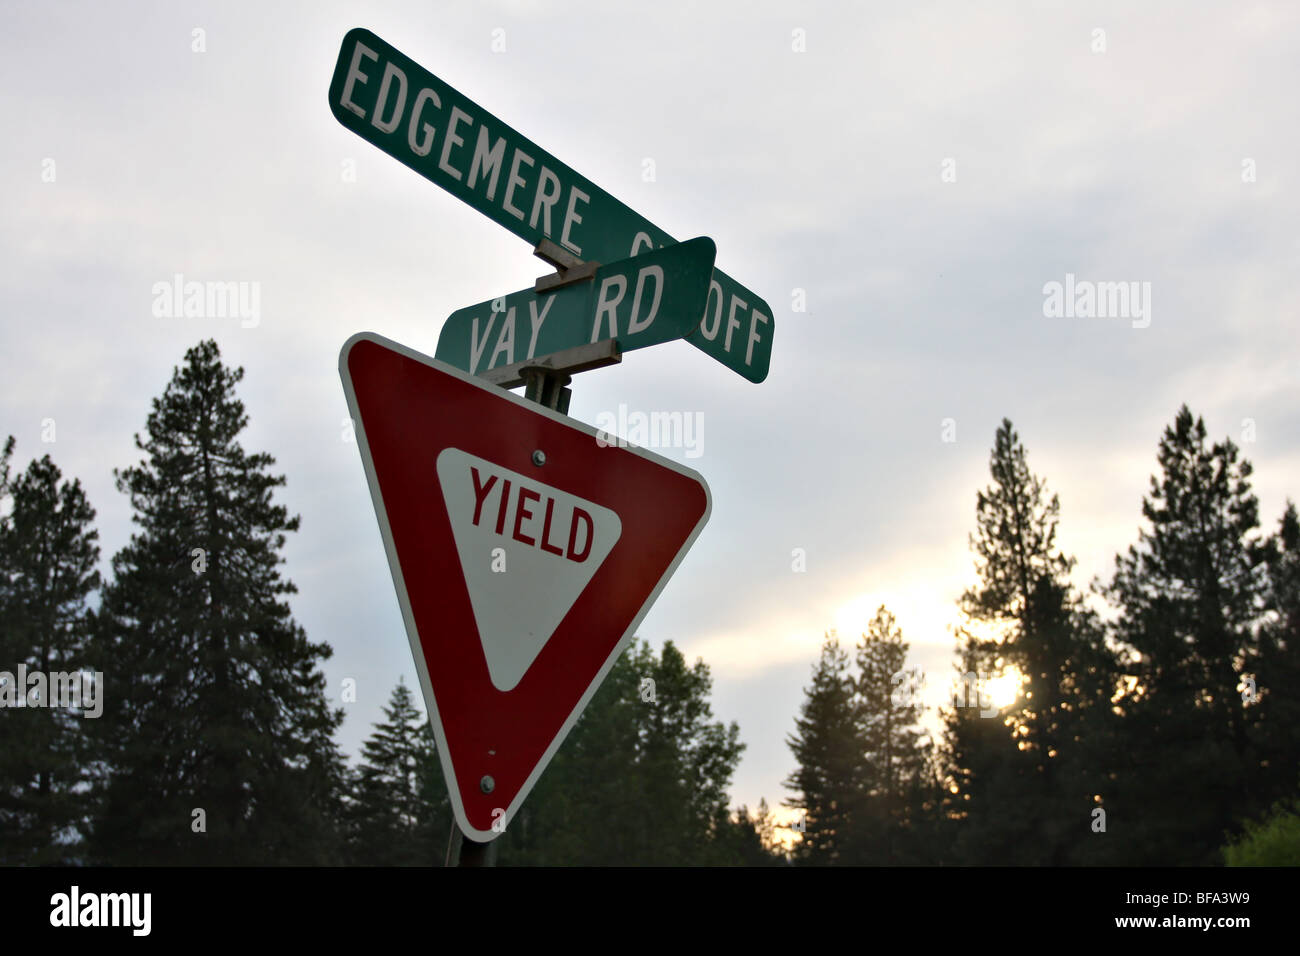 Yield sign at the intersection of Edgemere Cutoff Road and Vay Road, Iaho. - Stock Image